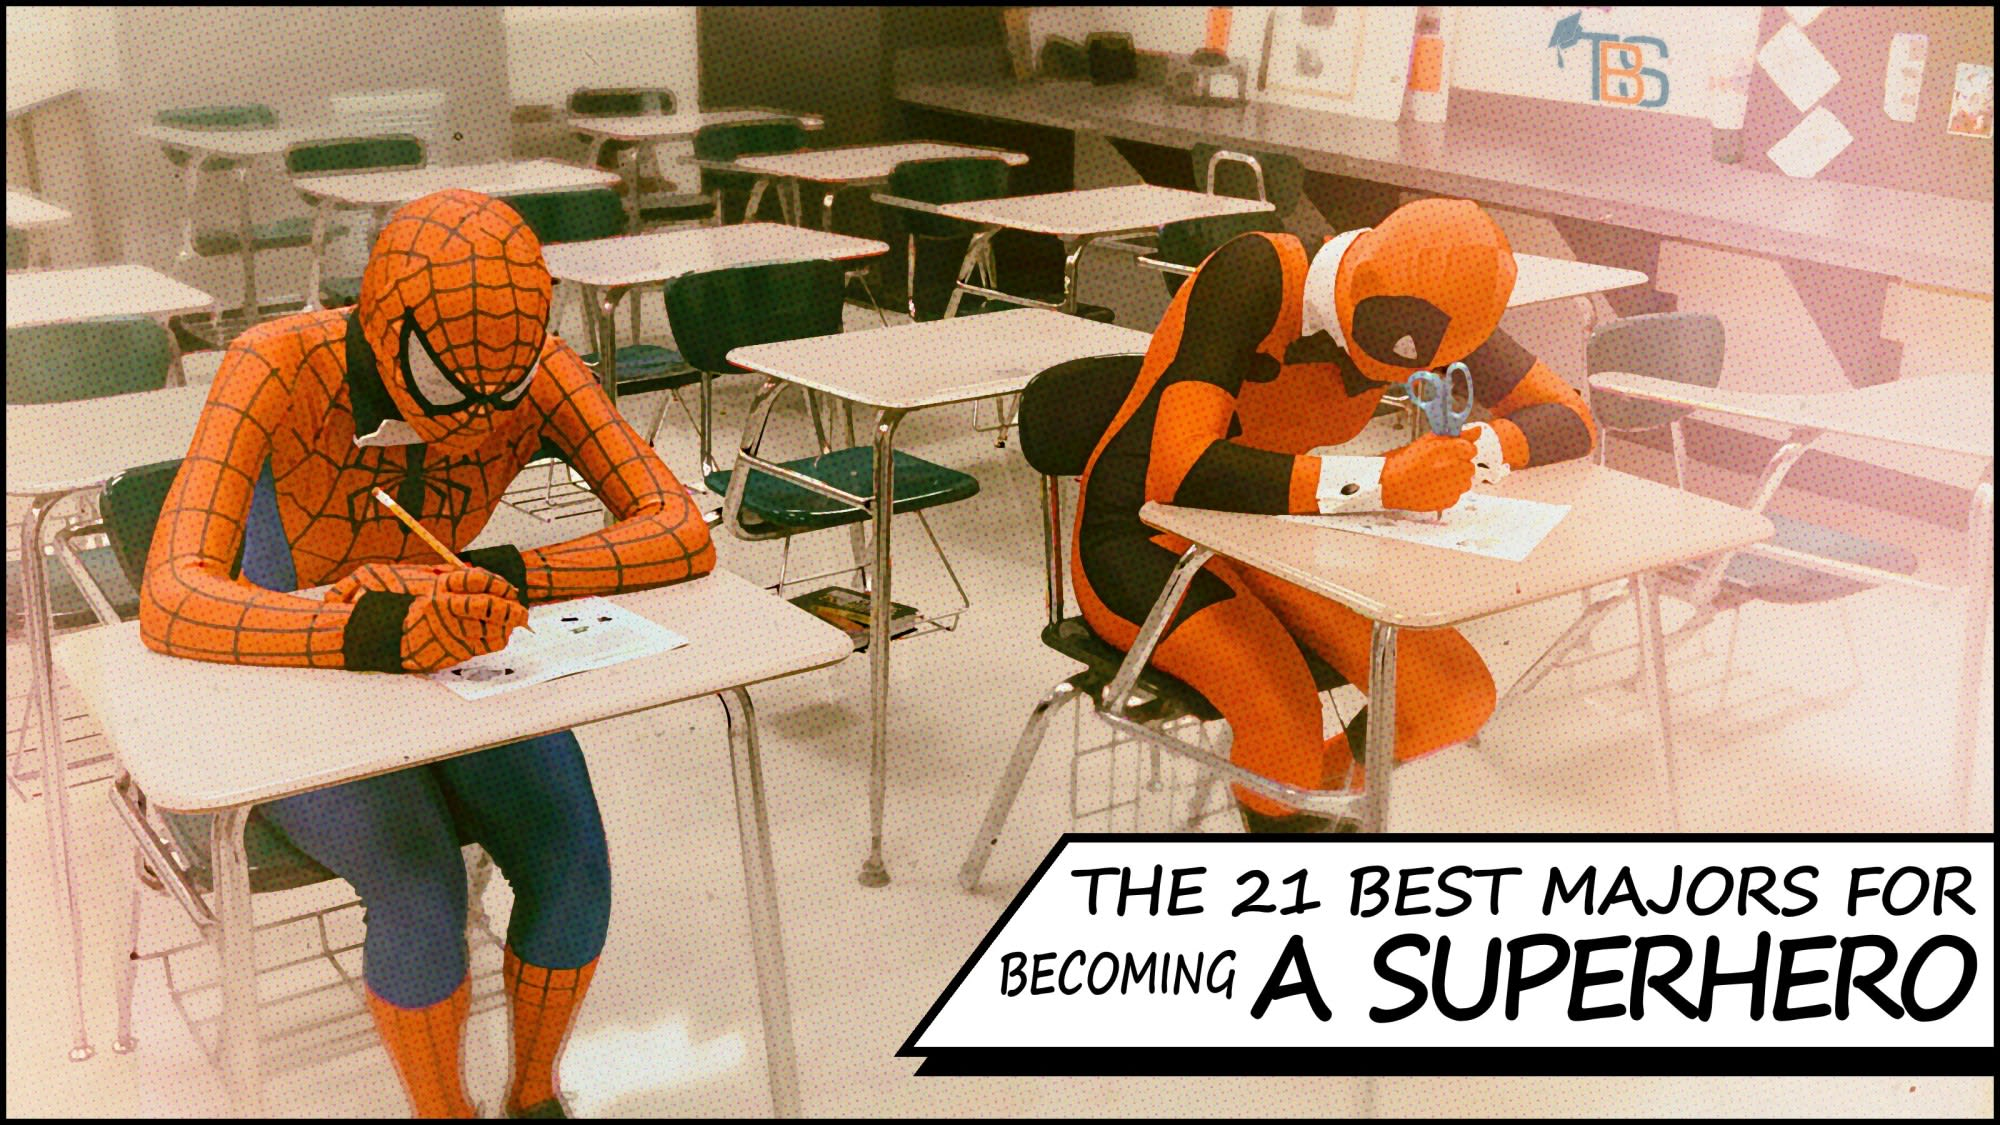 The 21 Best Majors For Becoming a Superhero   The Quad Magazine